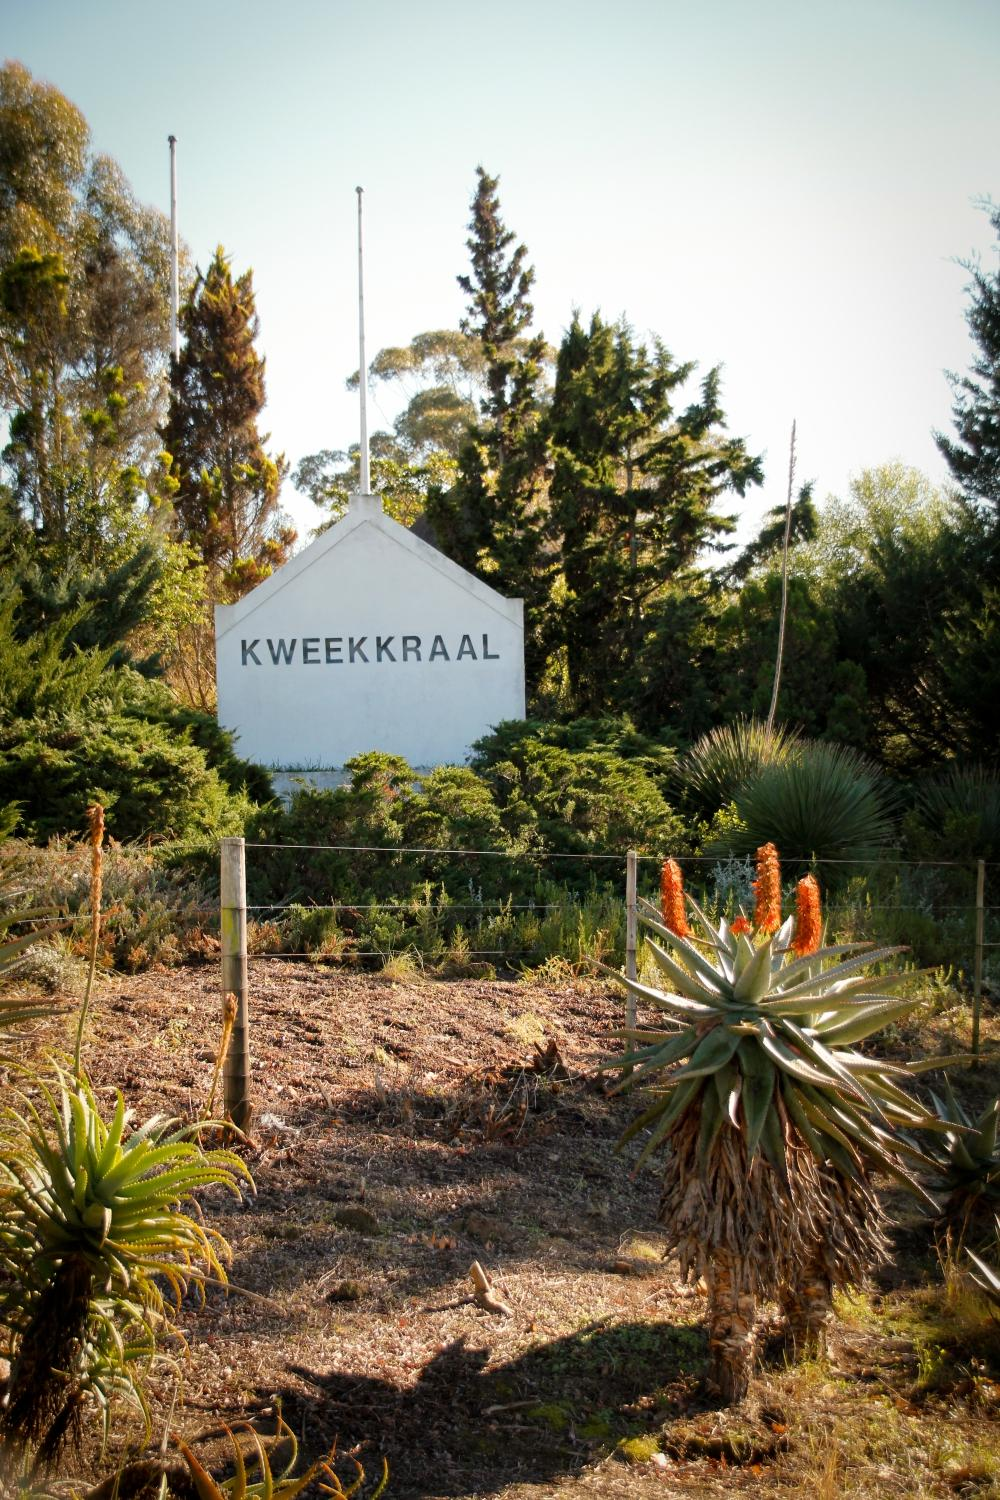 Riversdale South Africa  city photos gallery : Kweekkraal Guest Farm Riversdale, South Africa Lodge Reviews ...